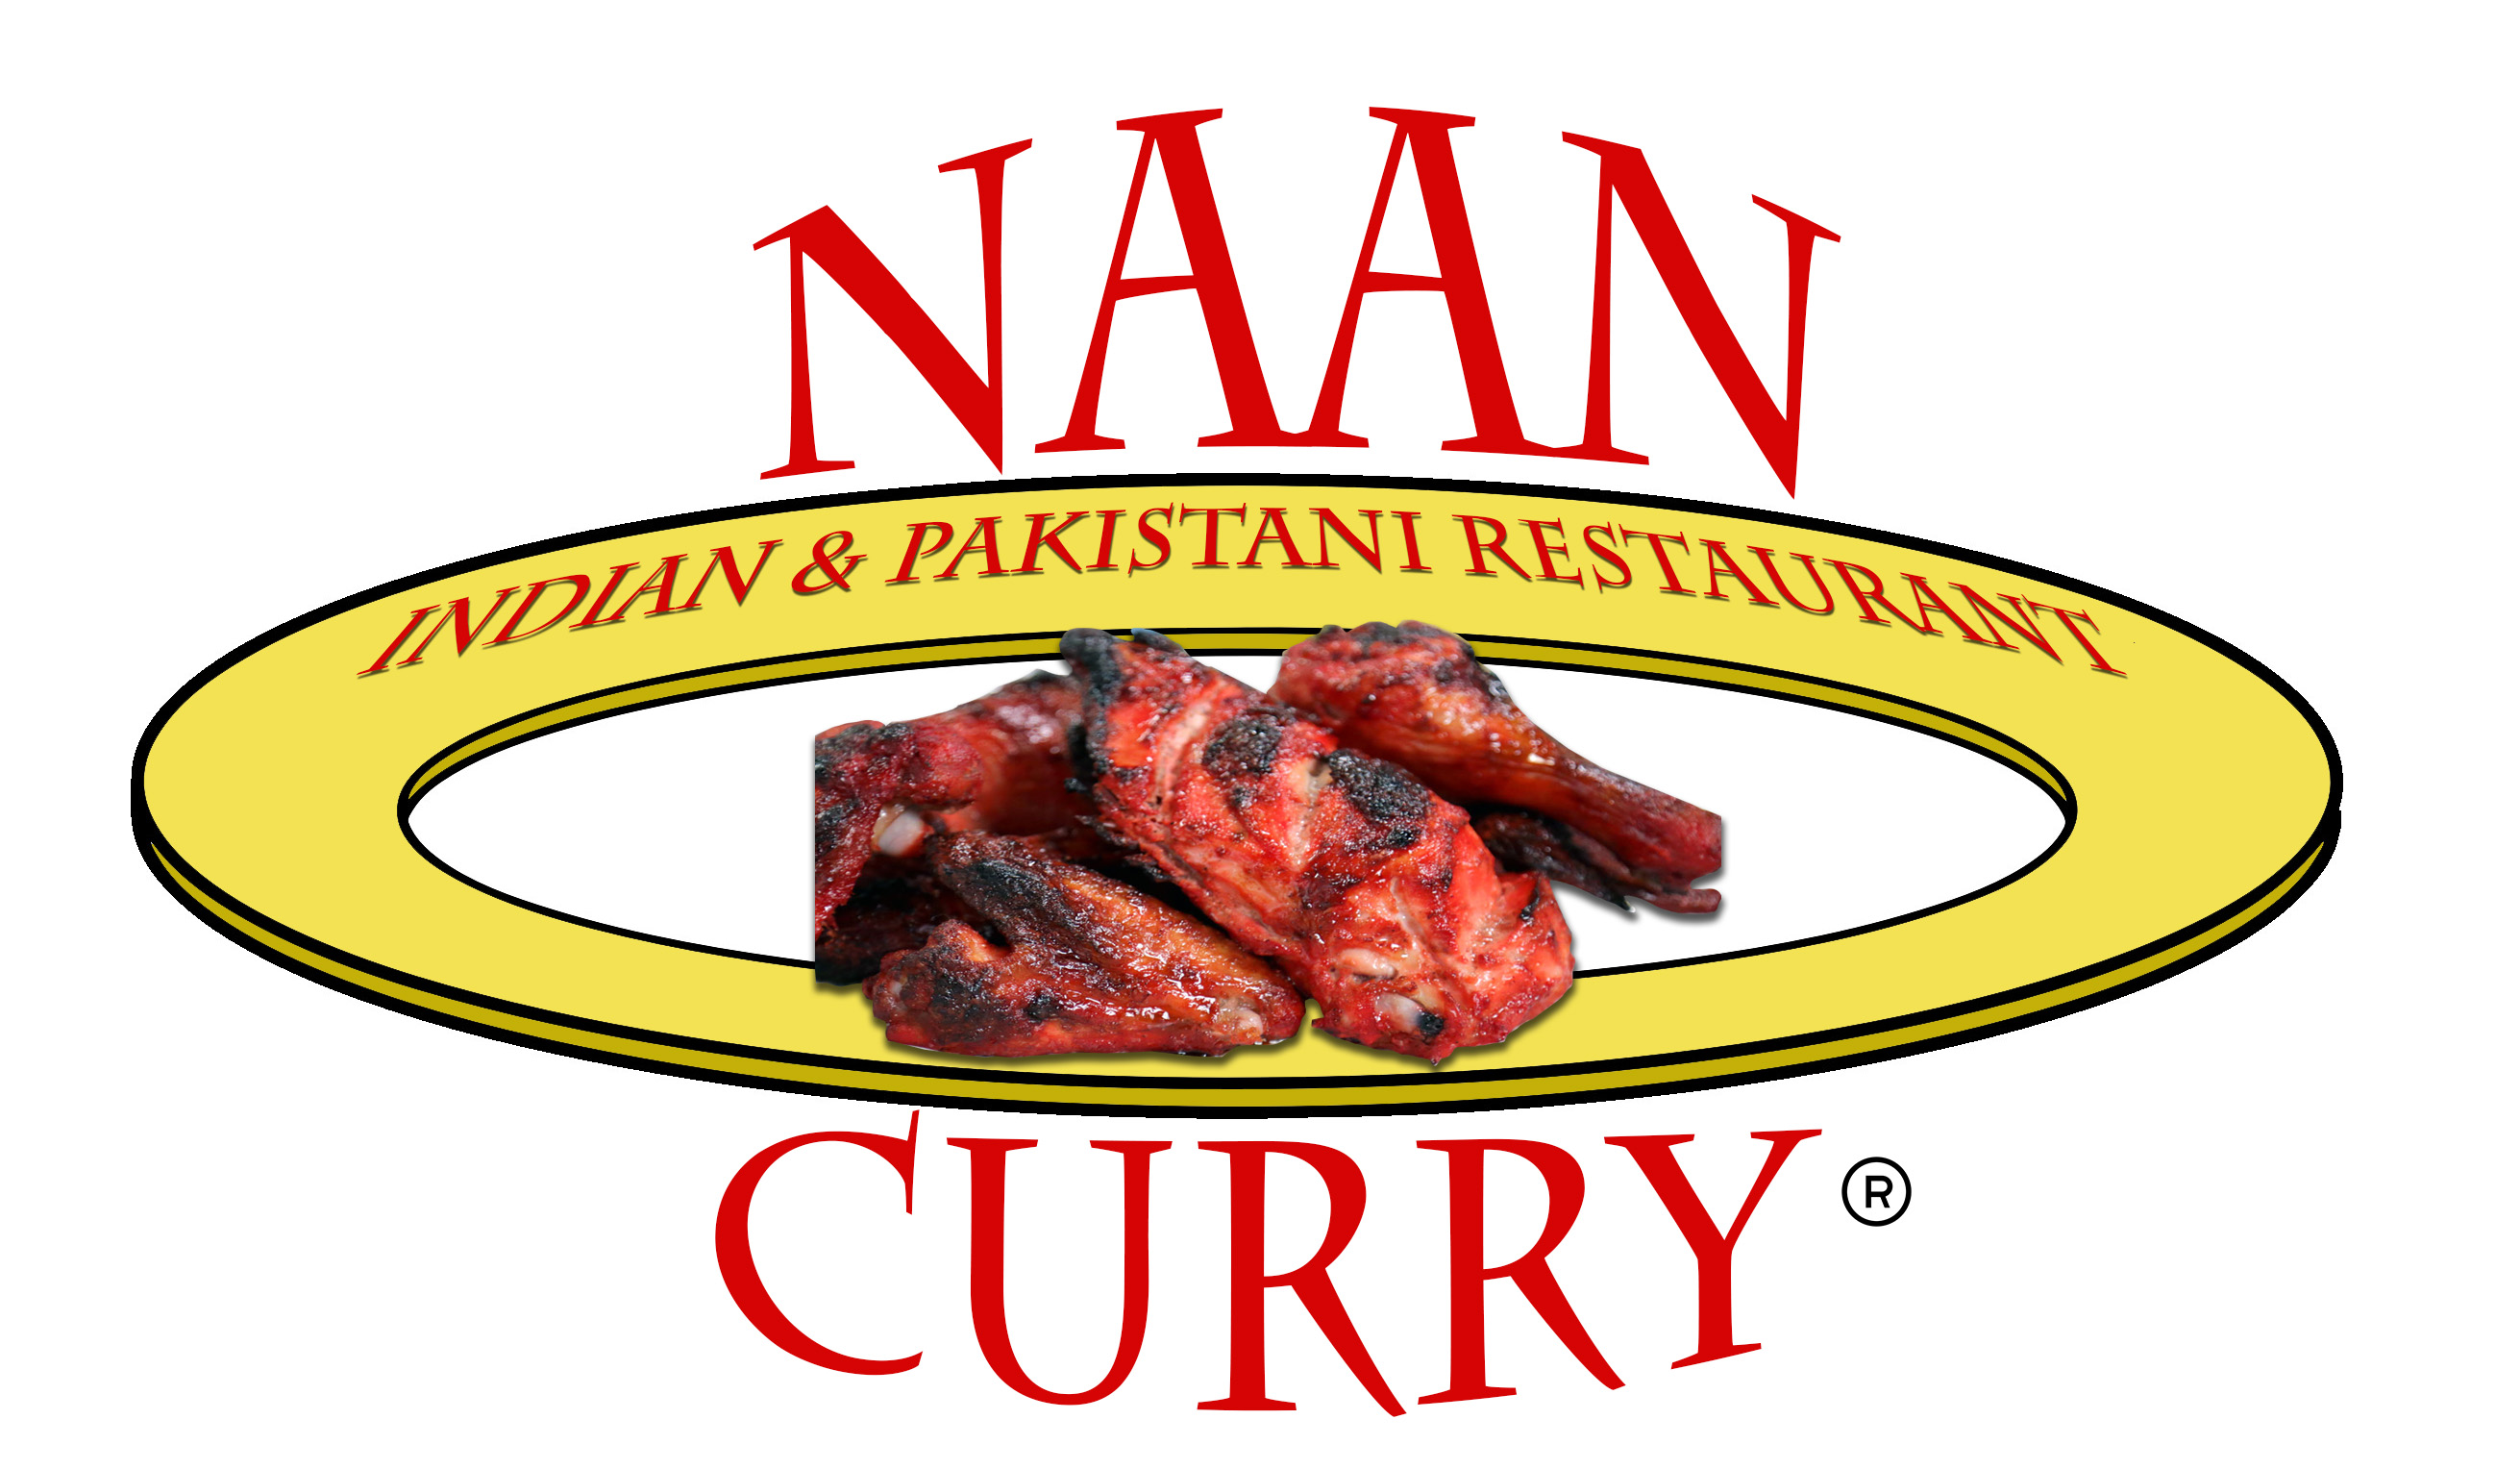 Naan Curry Indian and Pakistani Restaurant